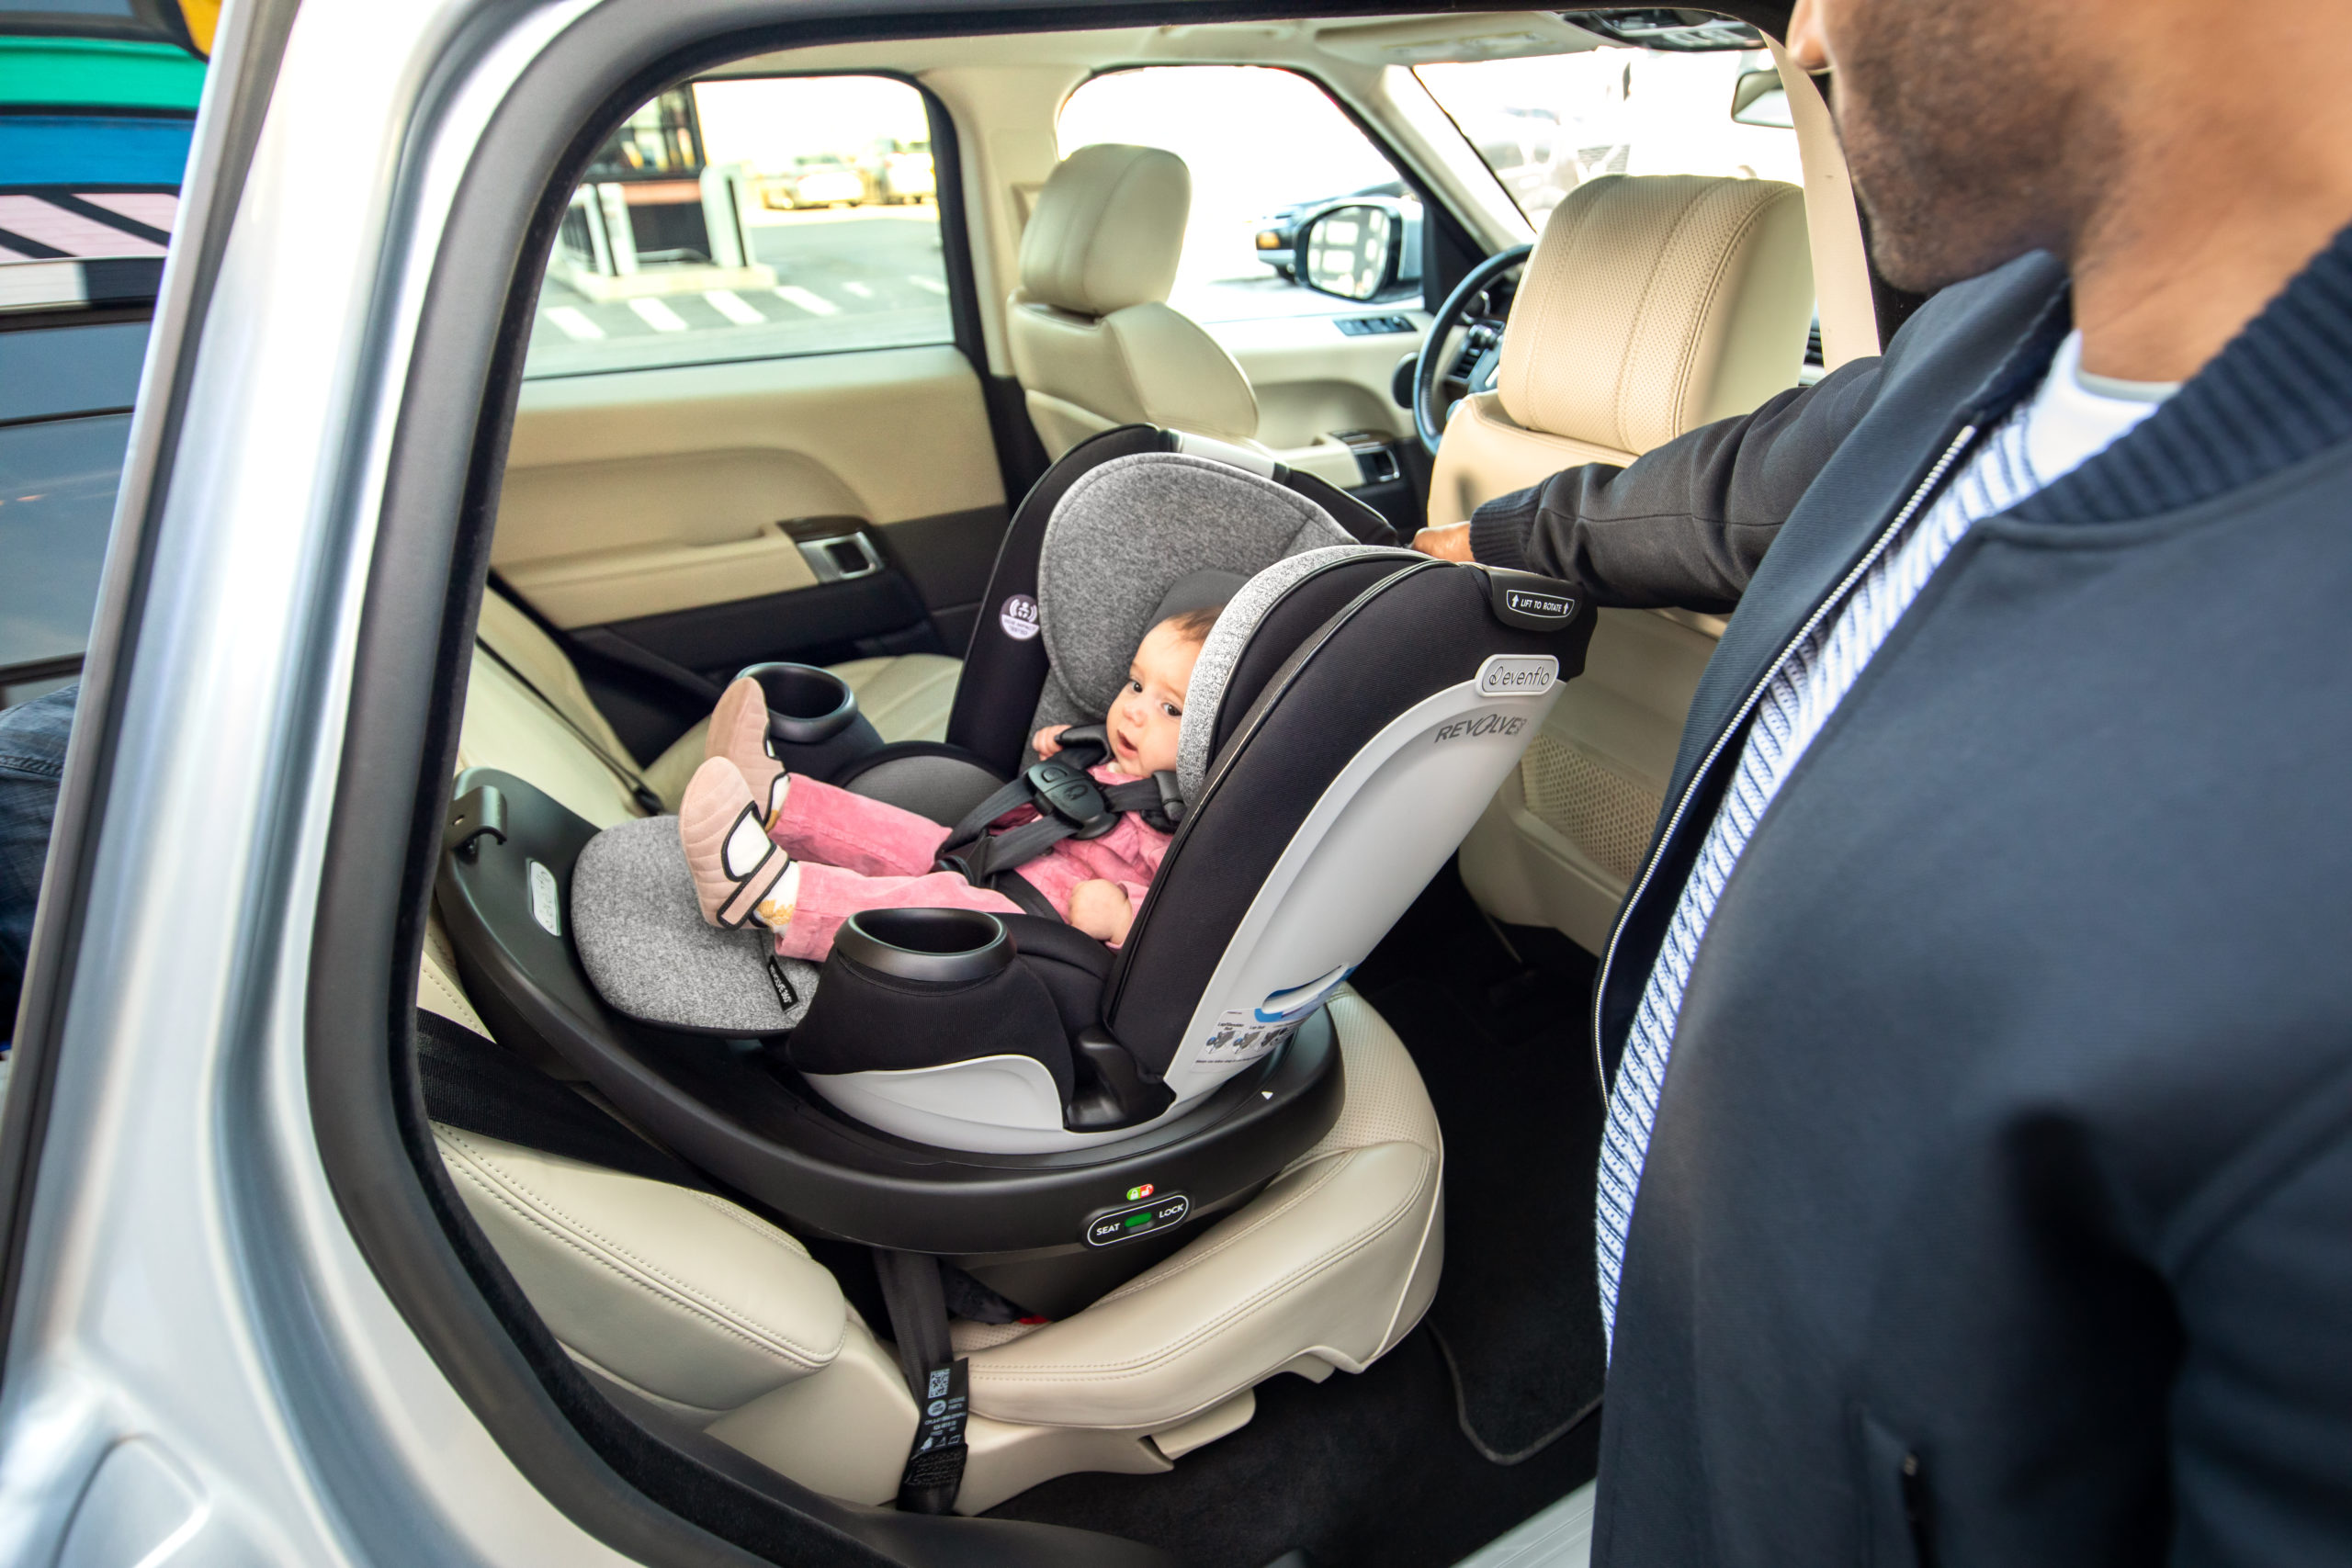 Evenflo Gold Revolve360 Rotational All-in-One Convertible Car Seat ...